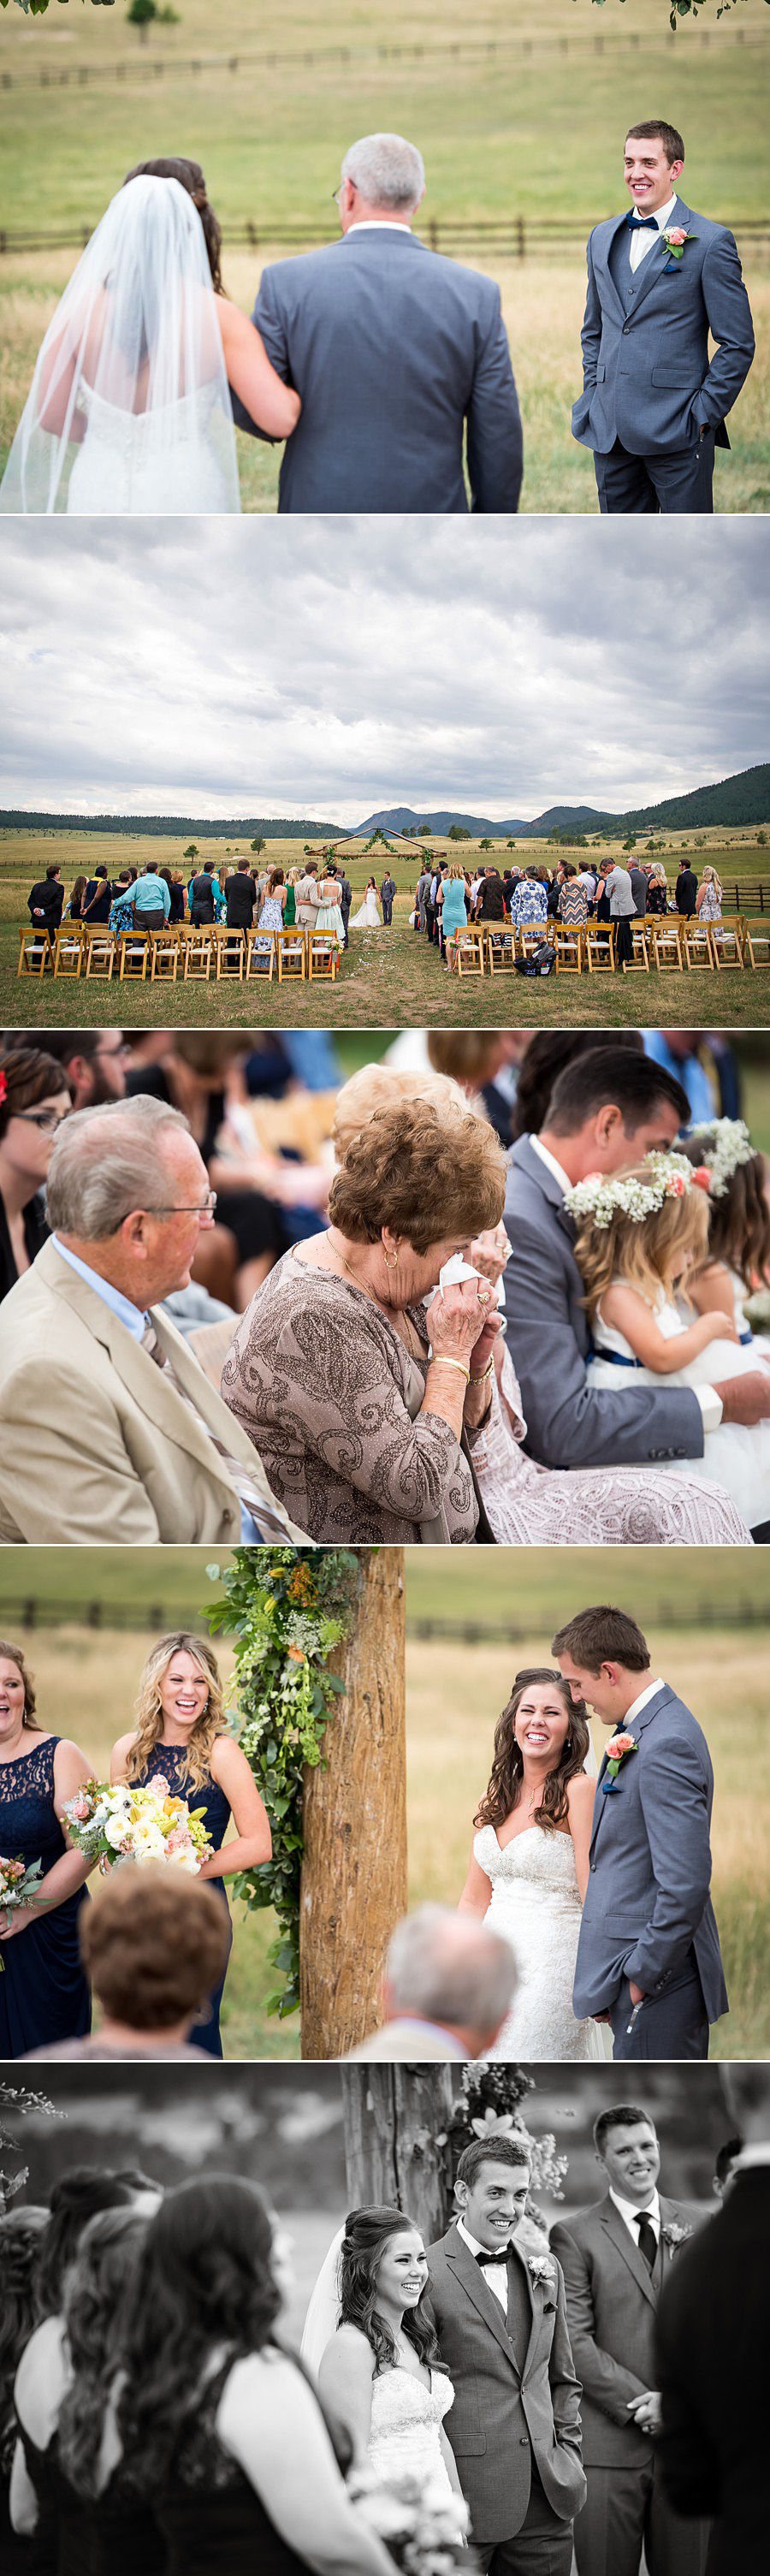 Wedding ceremony photos at Trey's Vista at Spruce Mountain Ranch